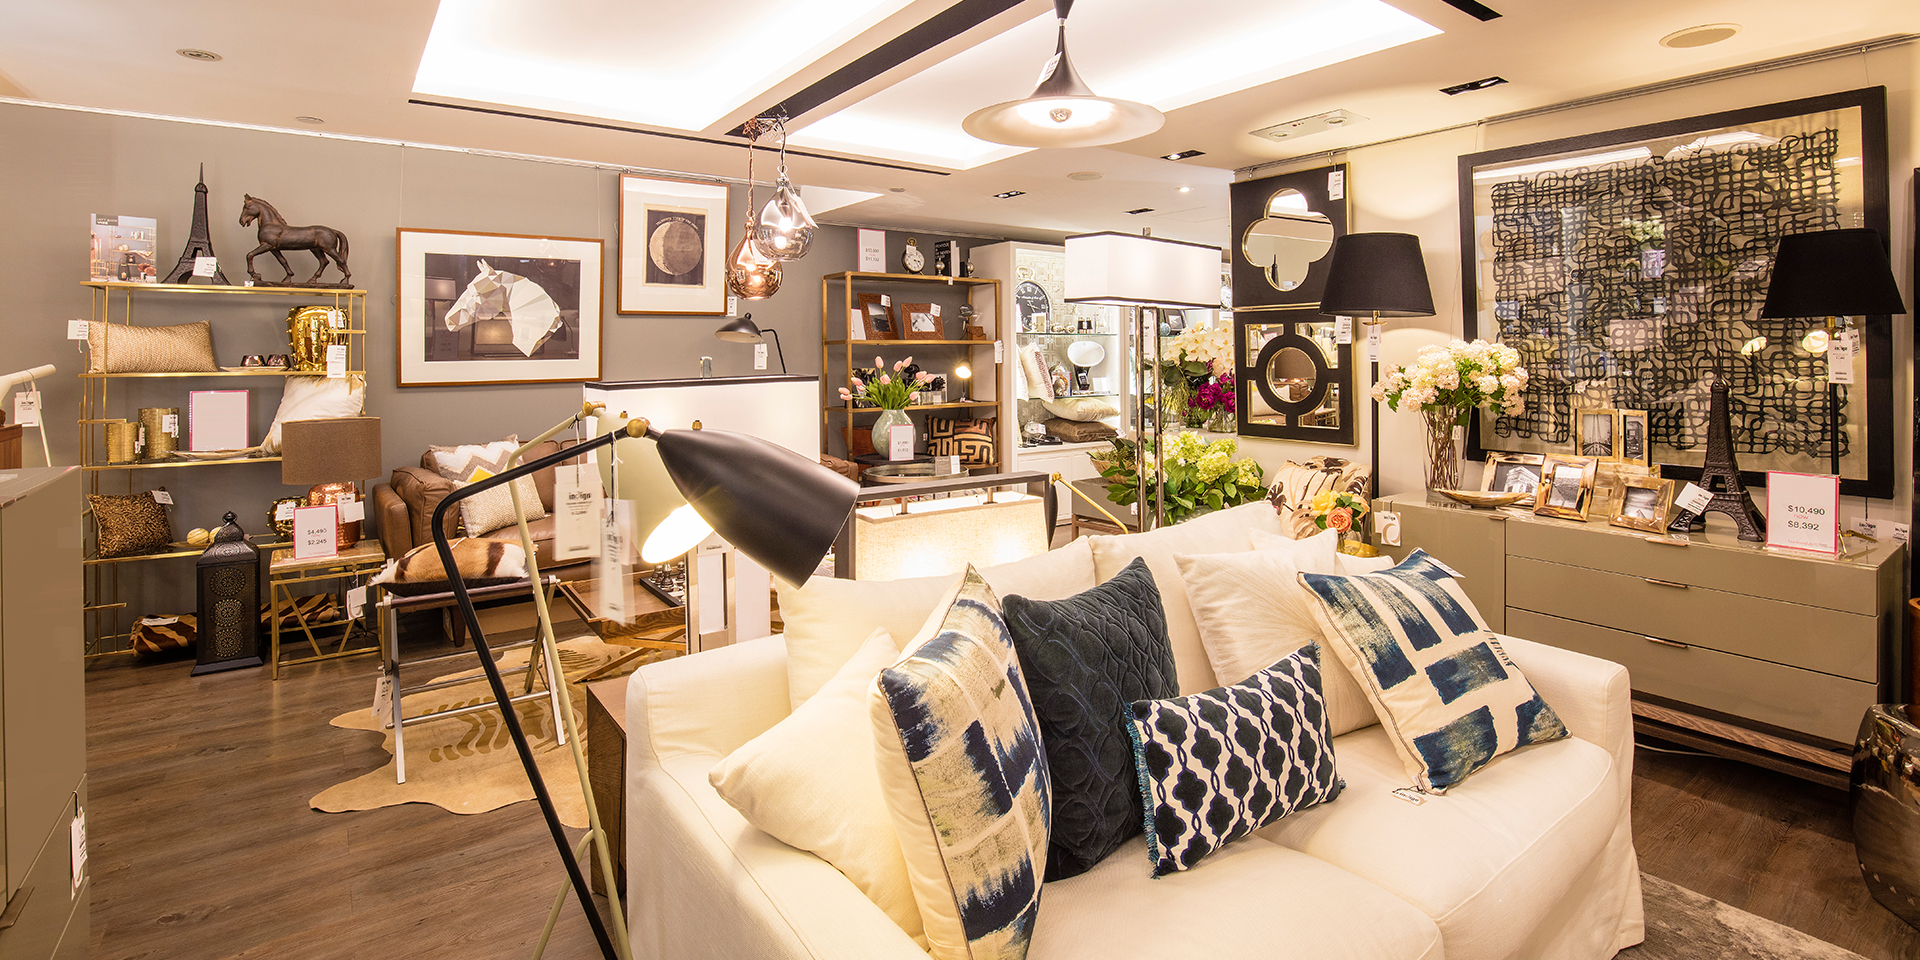 Around The Globe We Go The Top 10 Lighting Stores In Hong Kong 5 Lighting Stores In Hong Kong Around The Globe We Go: The Top 10 Lighting Stores In Hong Kong Around The Globe We Go The Top 10 Lighting Stores In Hong Kong 6